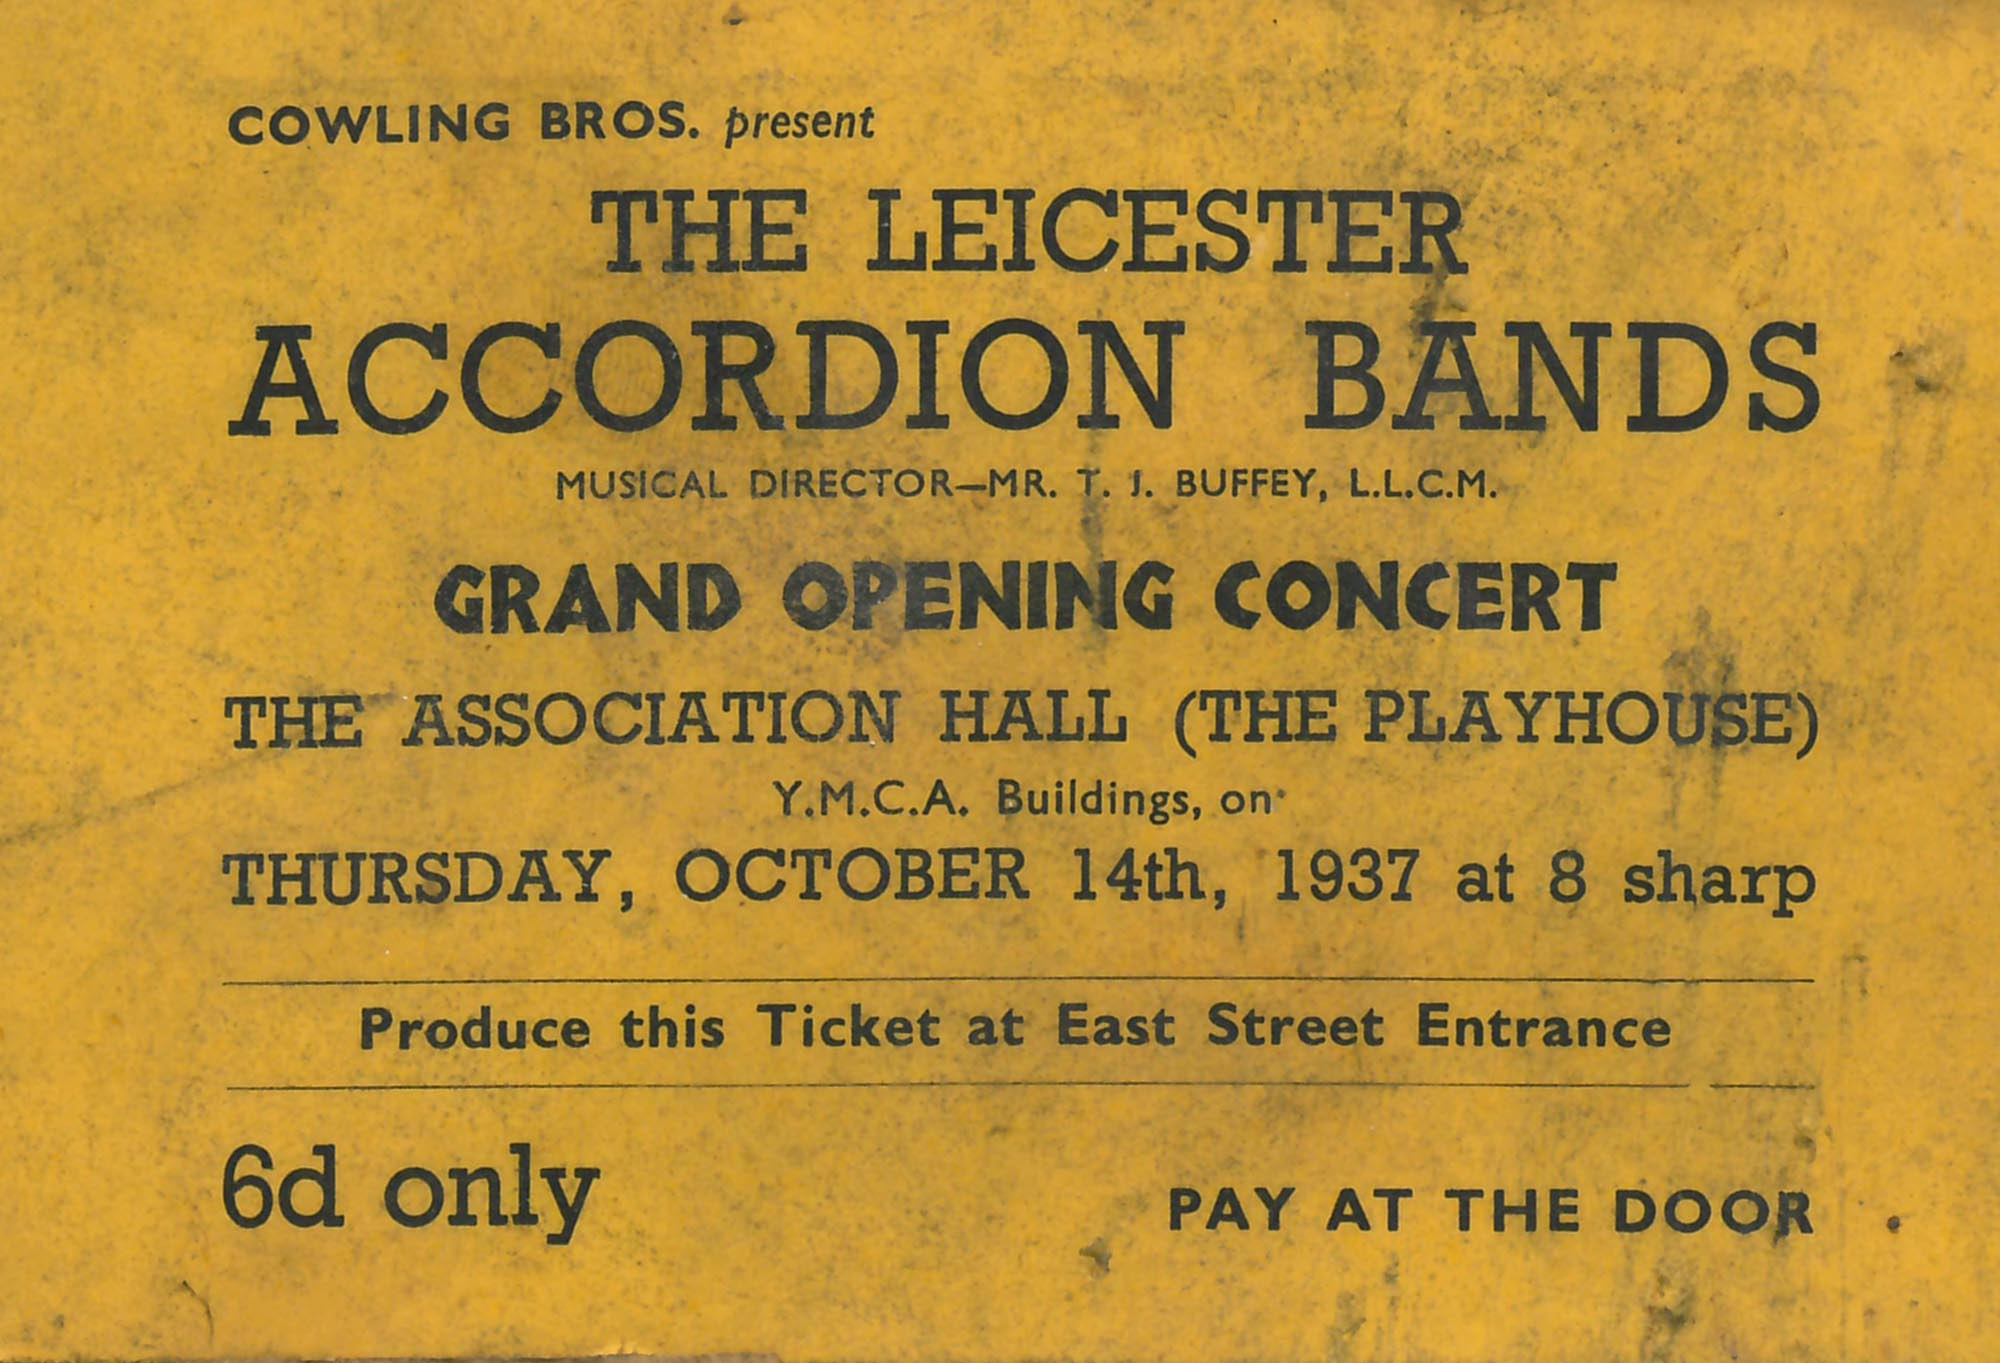 A ticket from a 1937 performance -